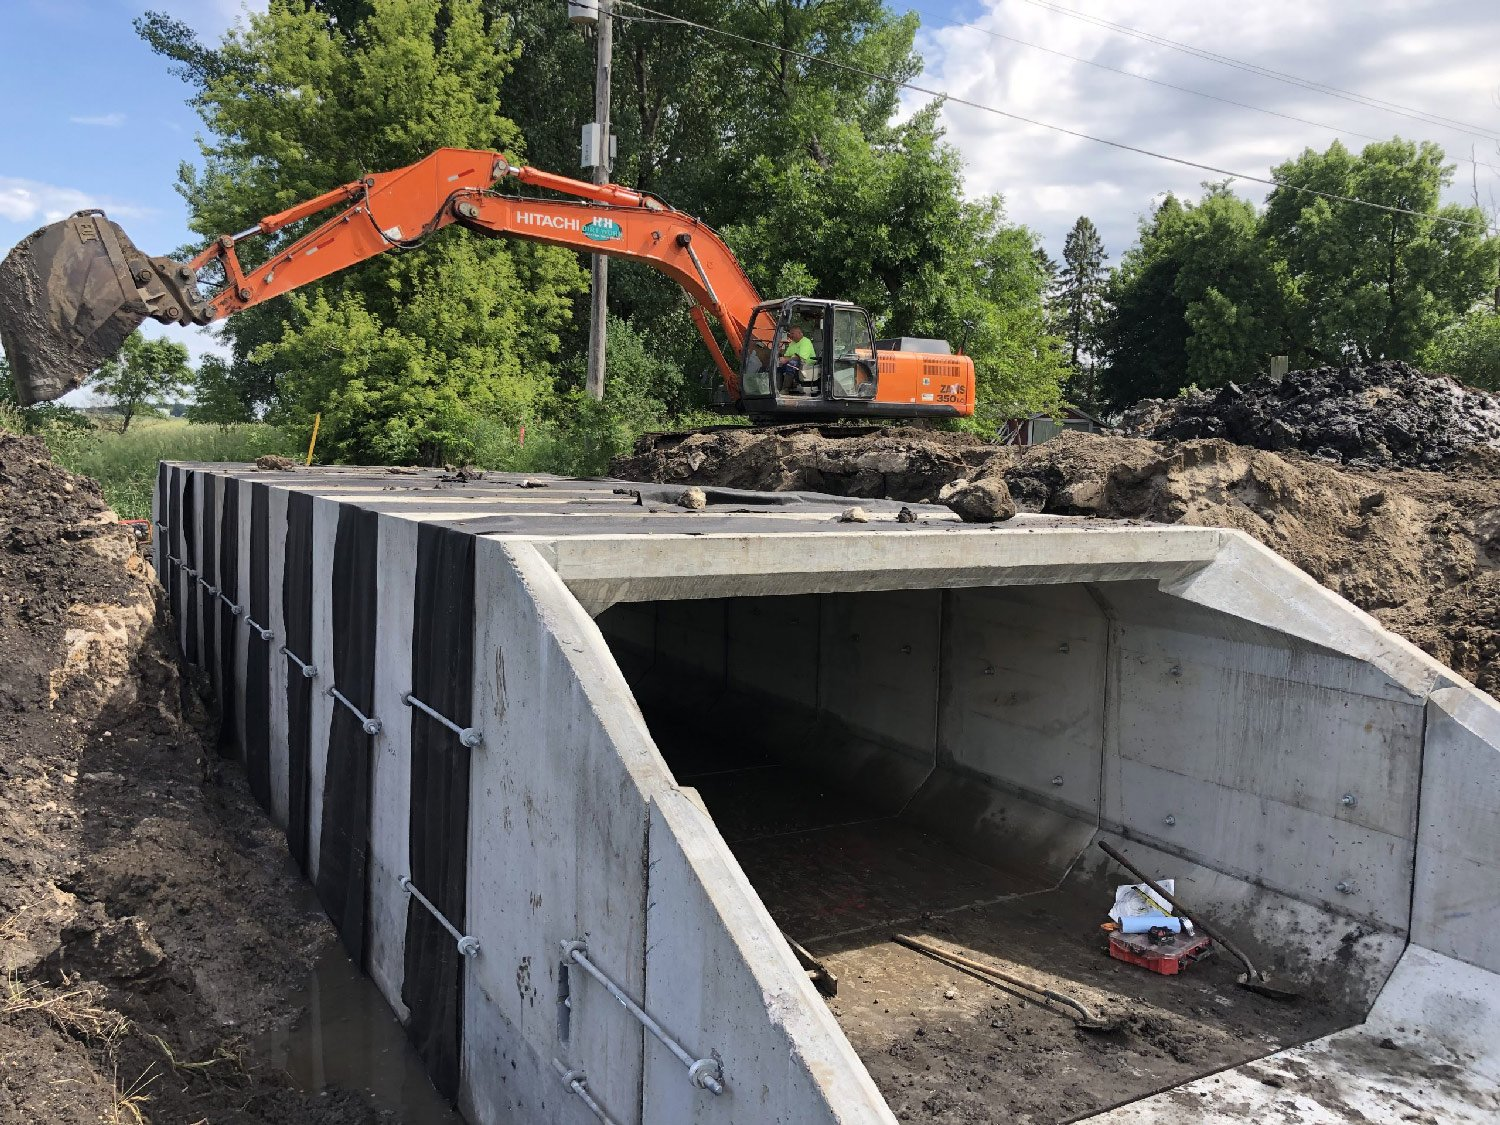 O'Brien County, Iowa 12'x6' box culvert